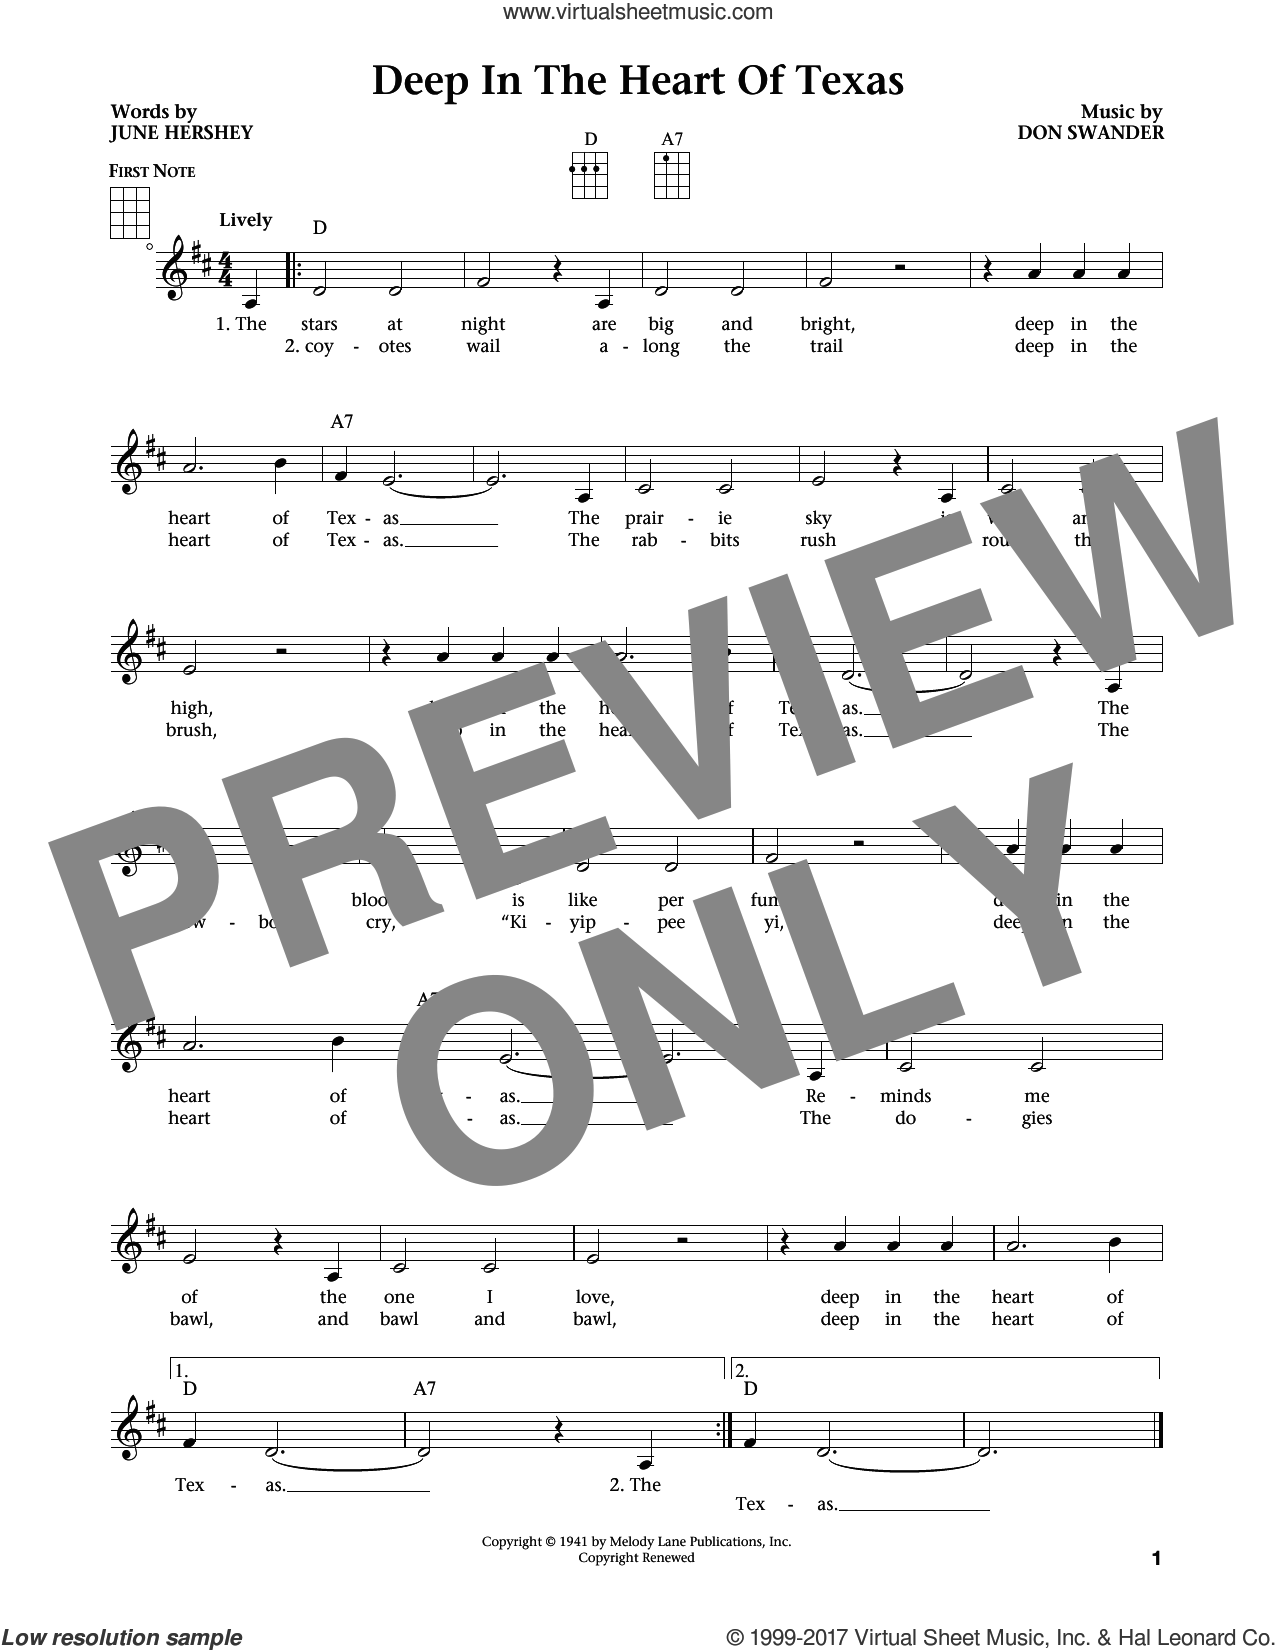 Deep In The Heart Of Texas (from The Daily Ukulele) (arr. Liz and Jim Beloff) sheet music for ukulele by Bing Crosby, Jim Beloff, Liz Beloff, Alvino Rey & His Orchestra, Don Swander and June Hershey, intermediate skill level